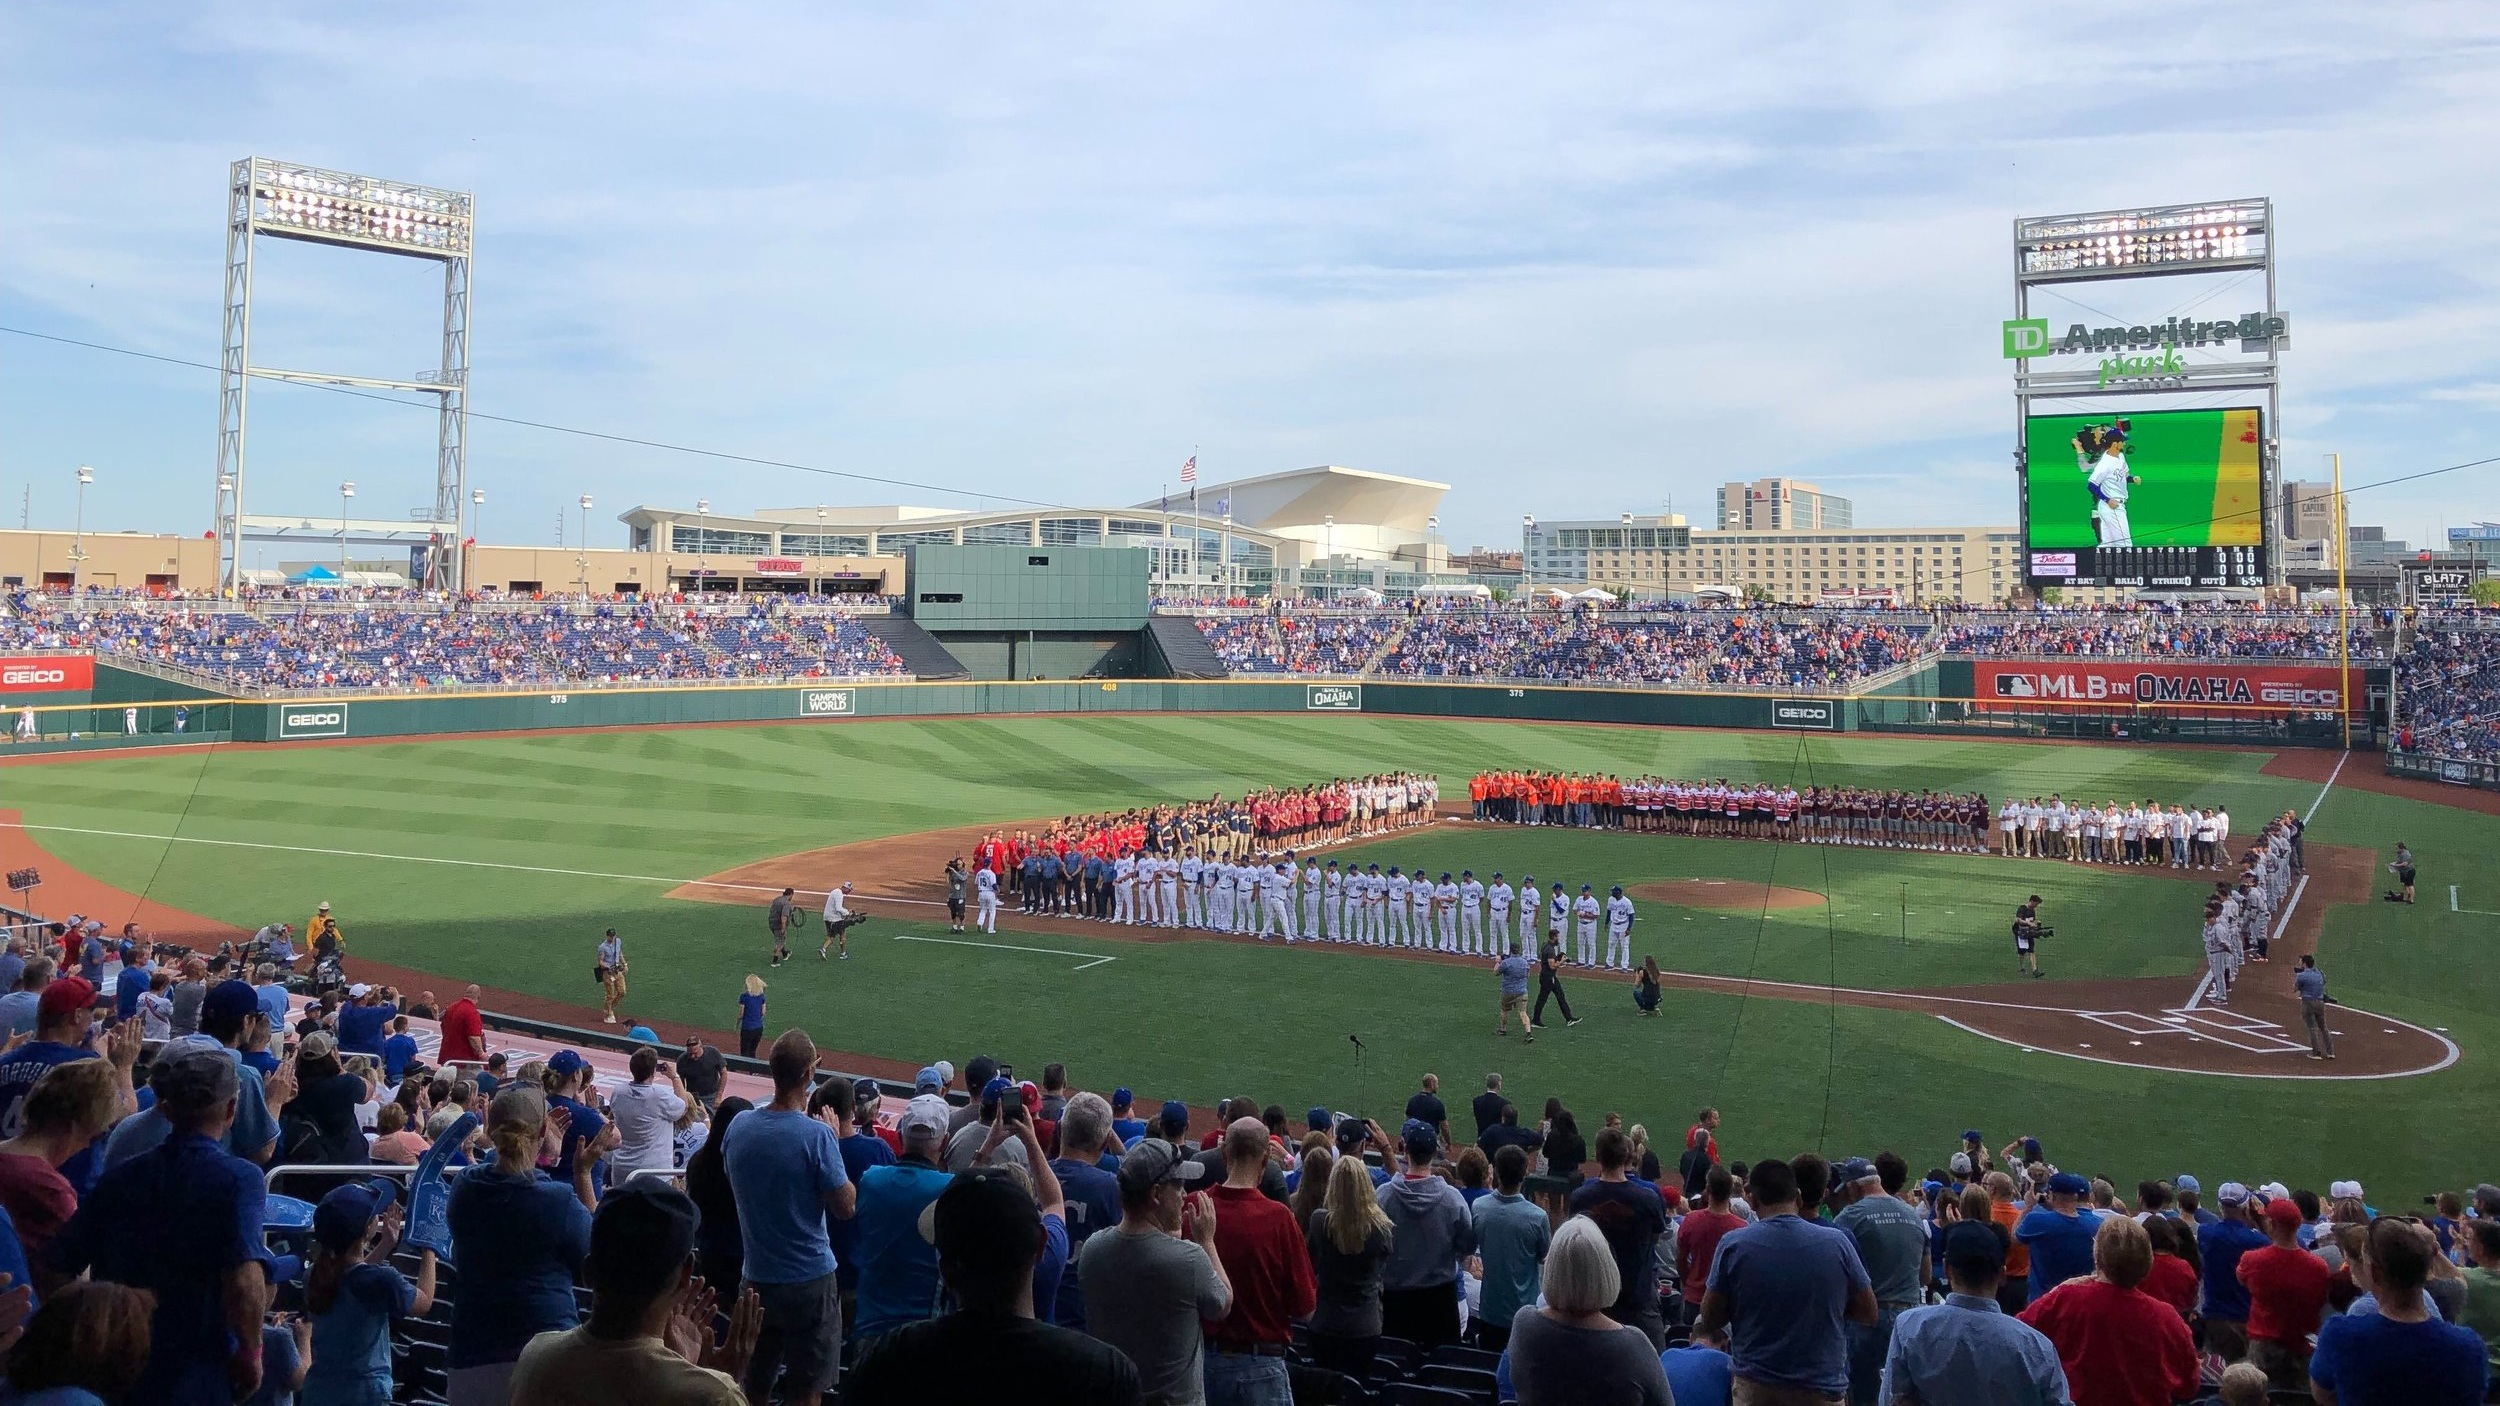 CWS teams gather with Major Leaguers from the Kansas City Royals and Detroit Tigers on June 13, 2019 as part of the opening festivities around the 2019 College World Series.